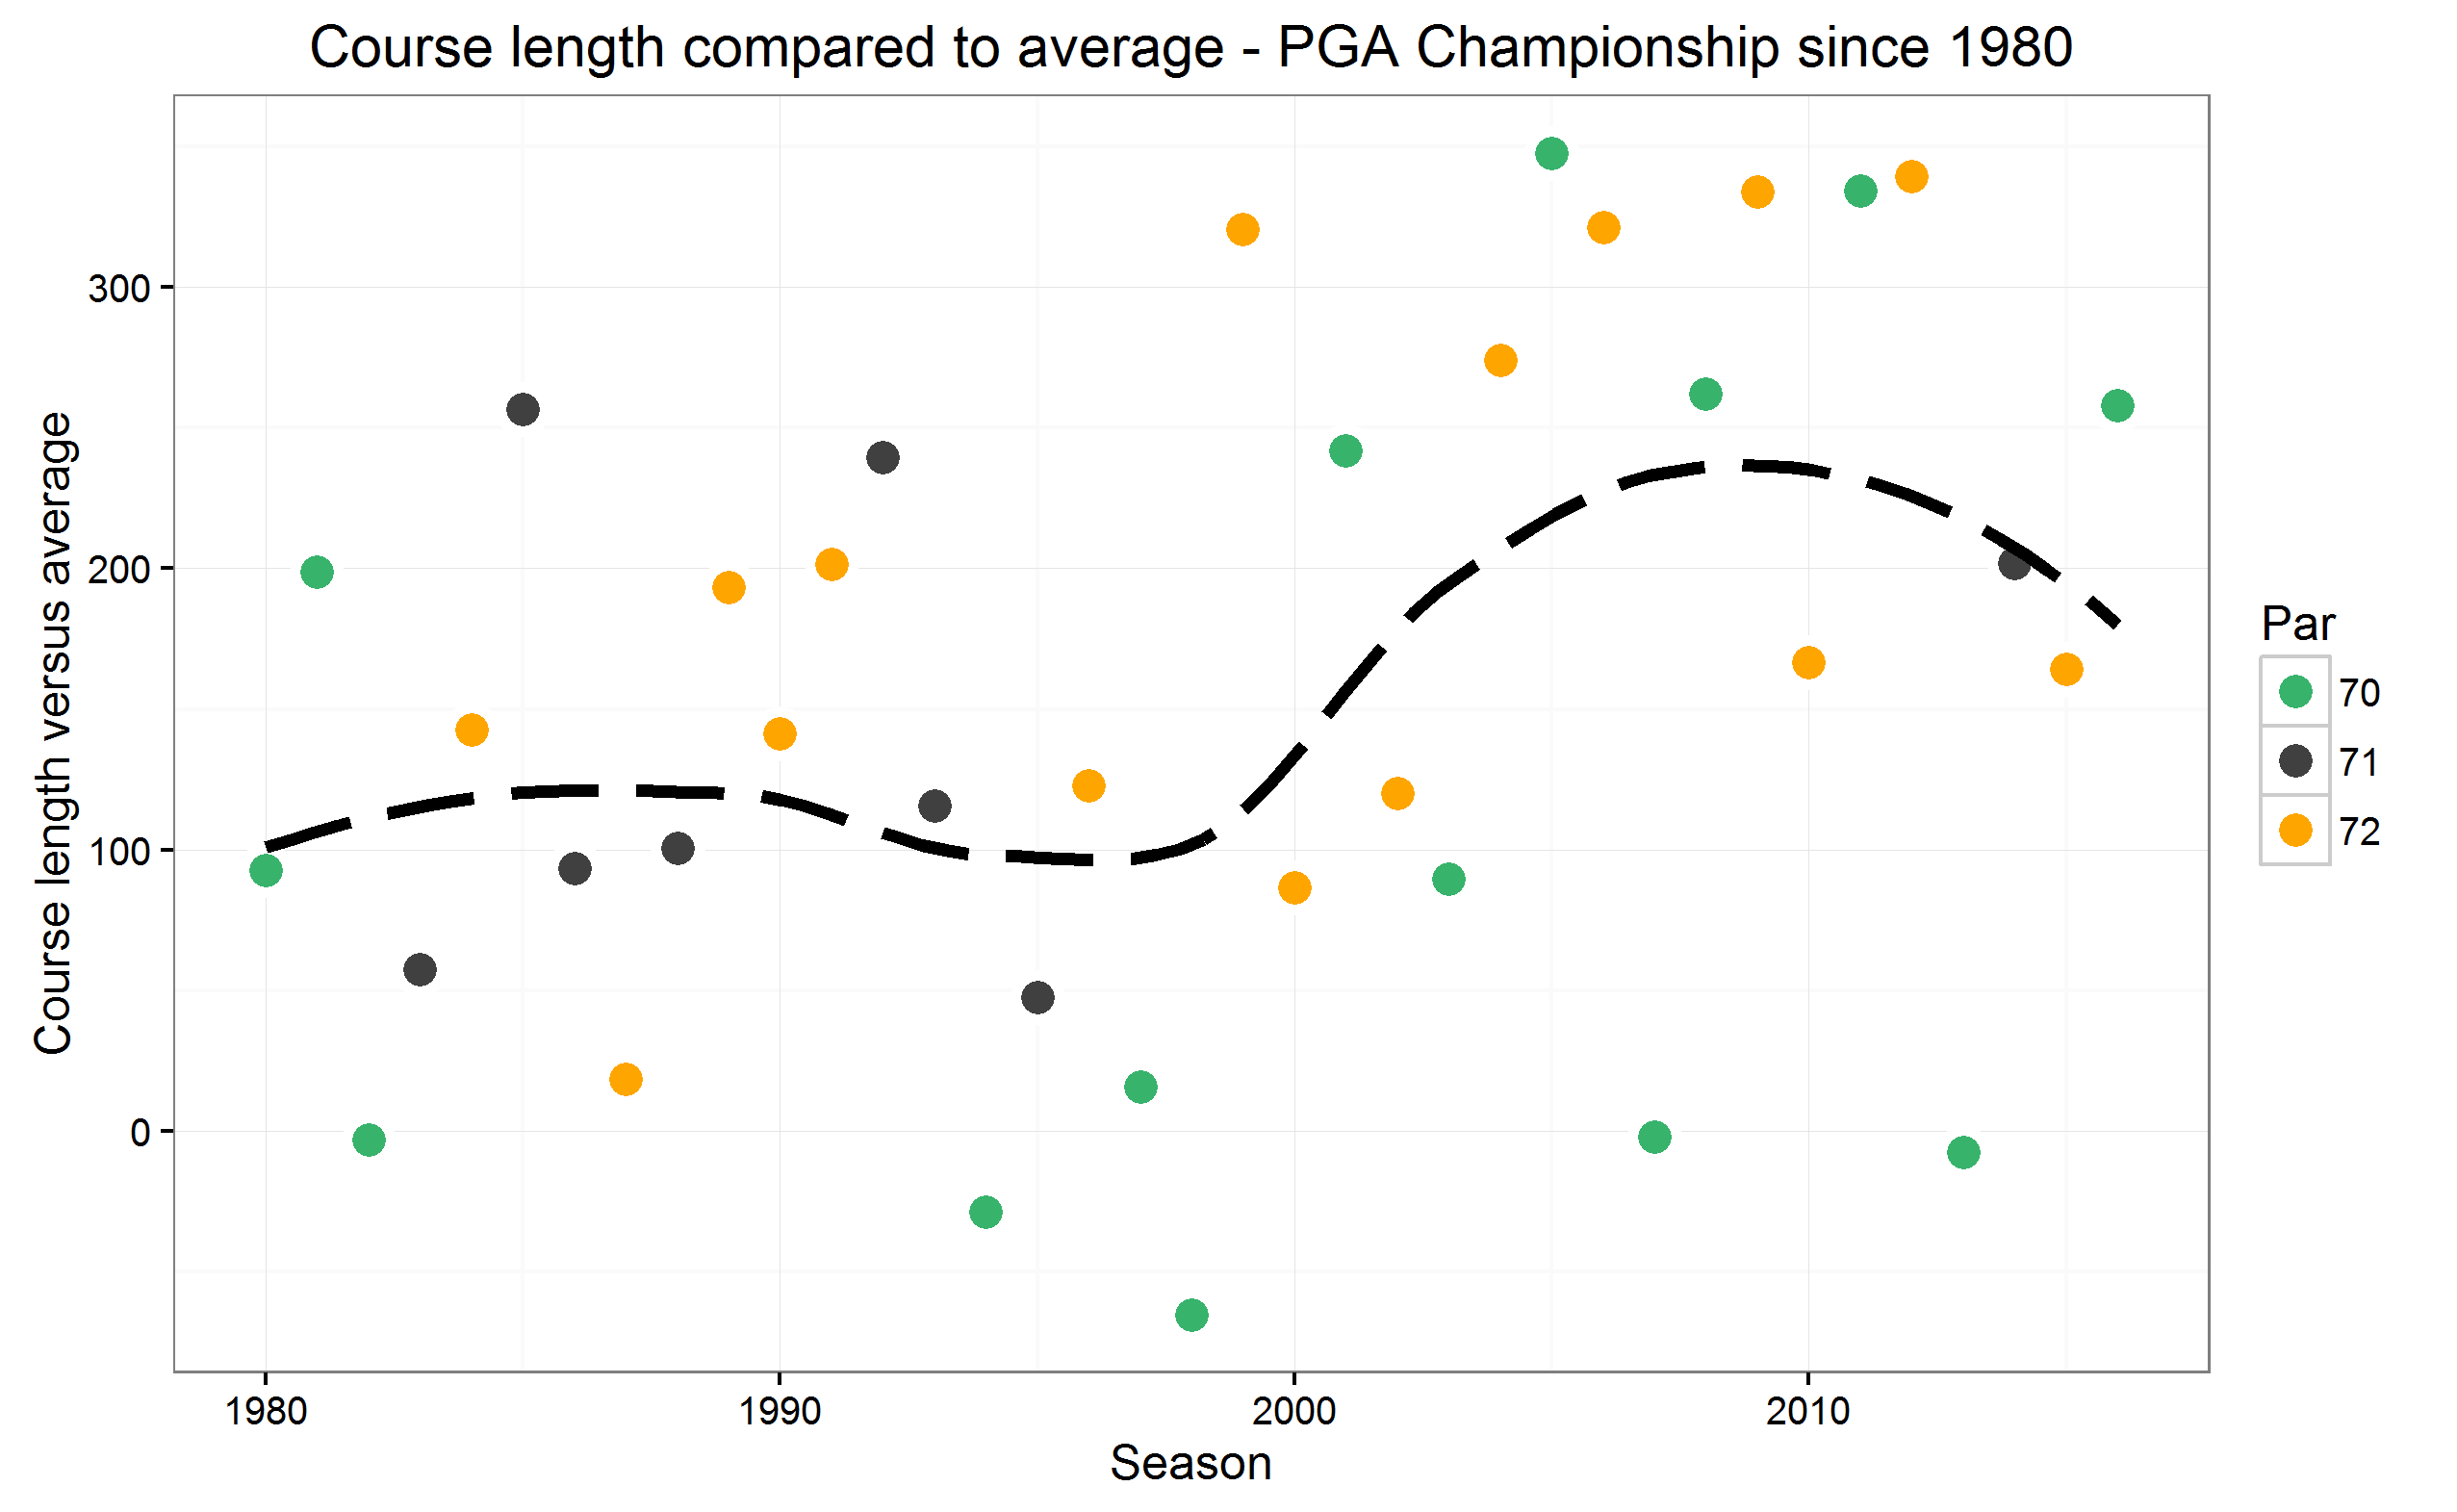 pga-champ-course-length